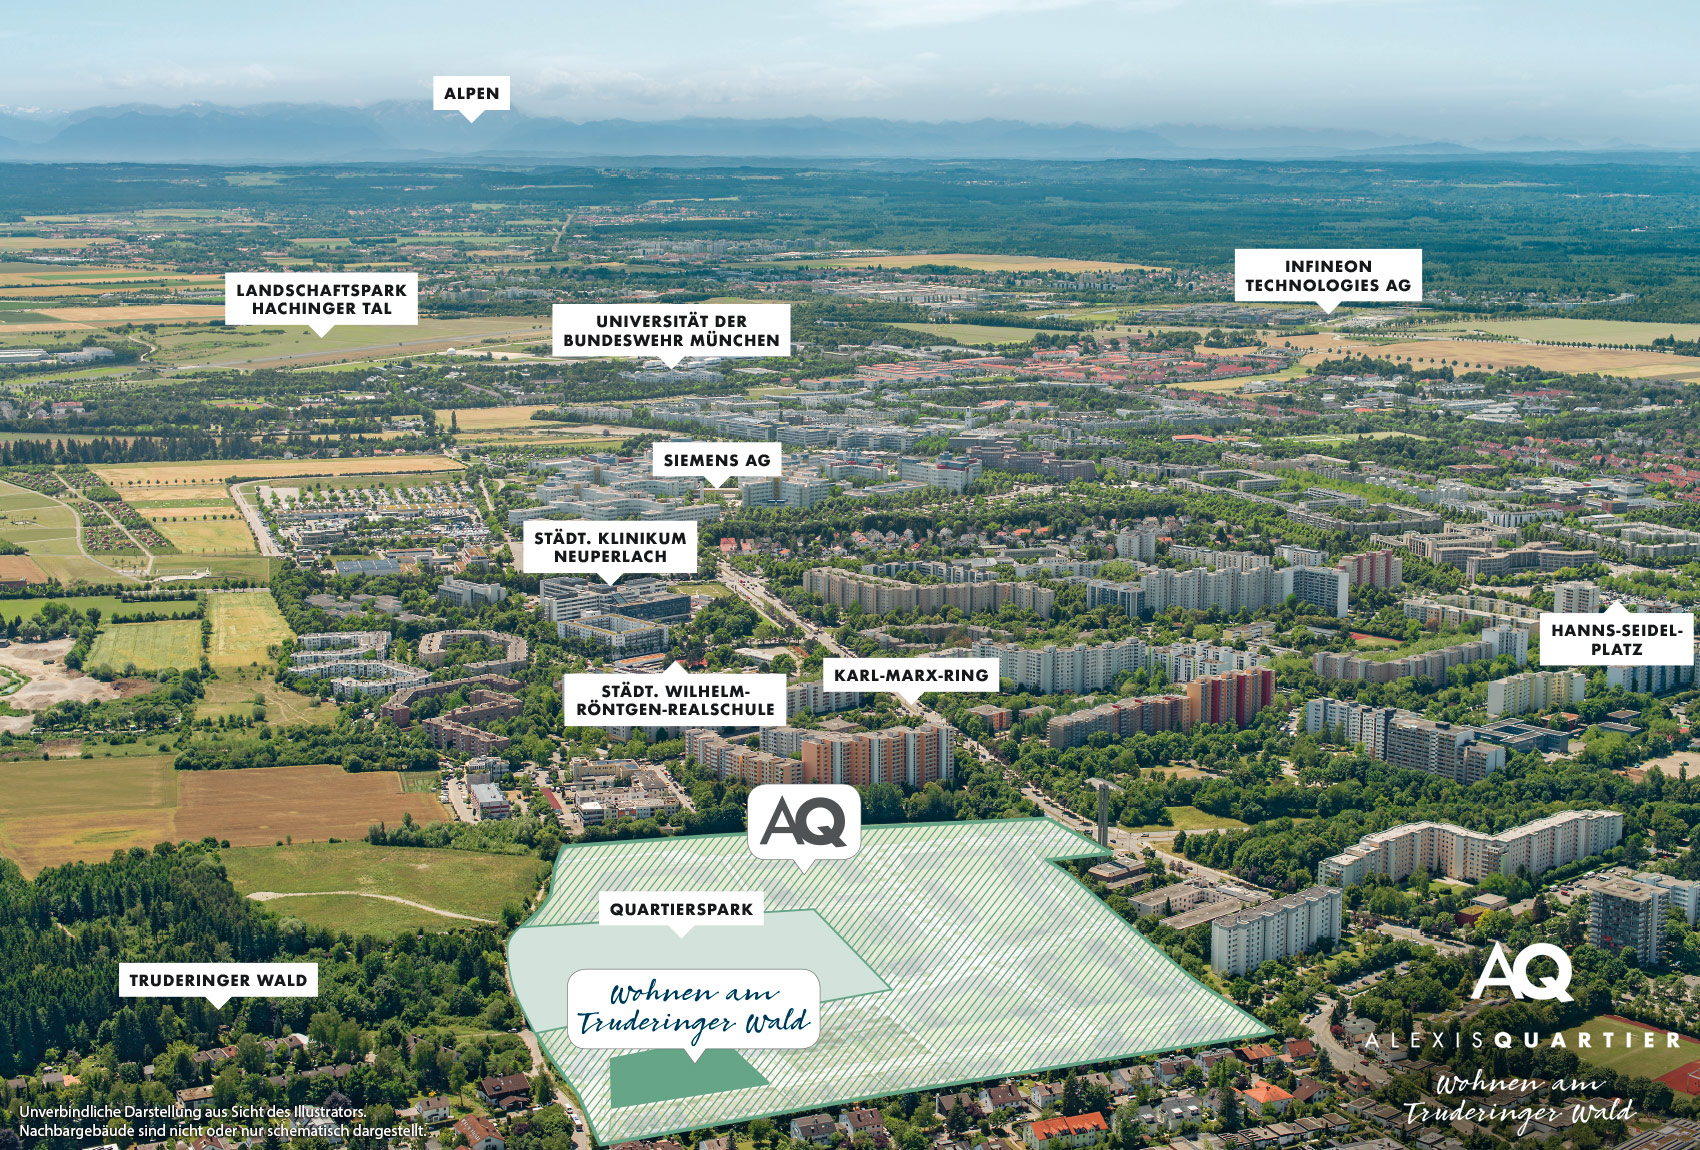 Property Alexisquartier - Wohnen am Truderinger Wald - commercial units - aerial photo